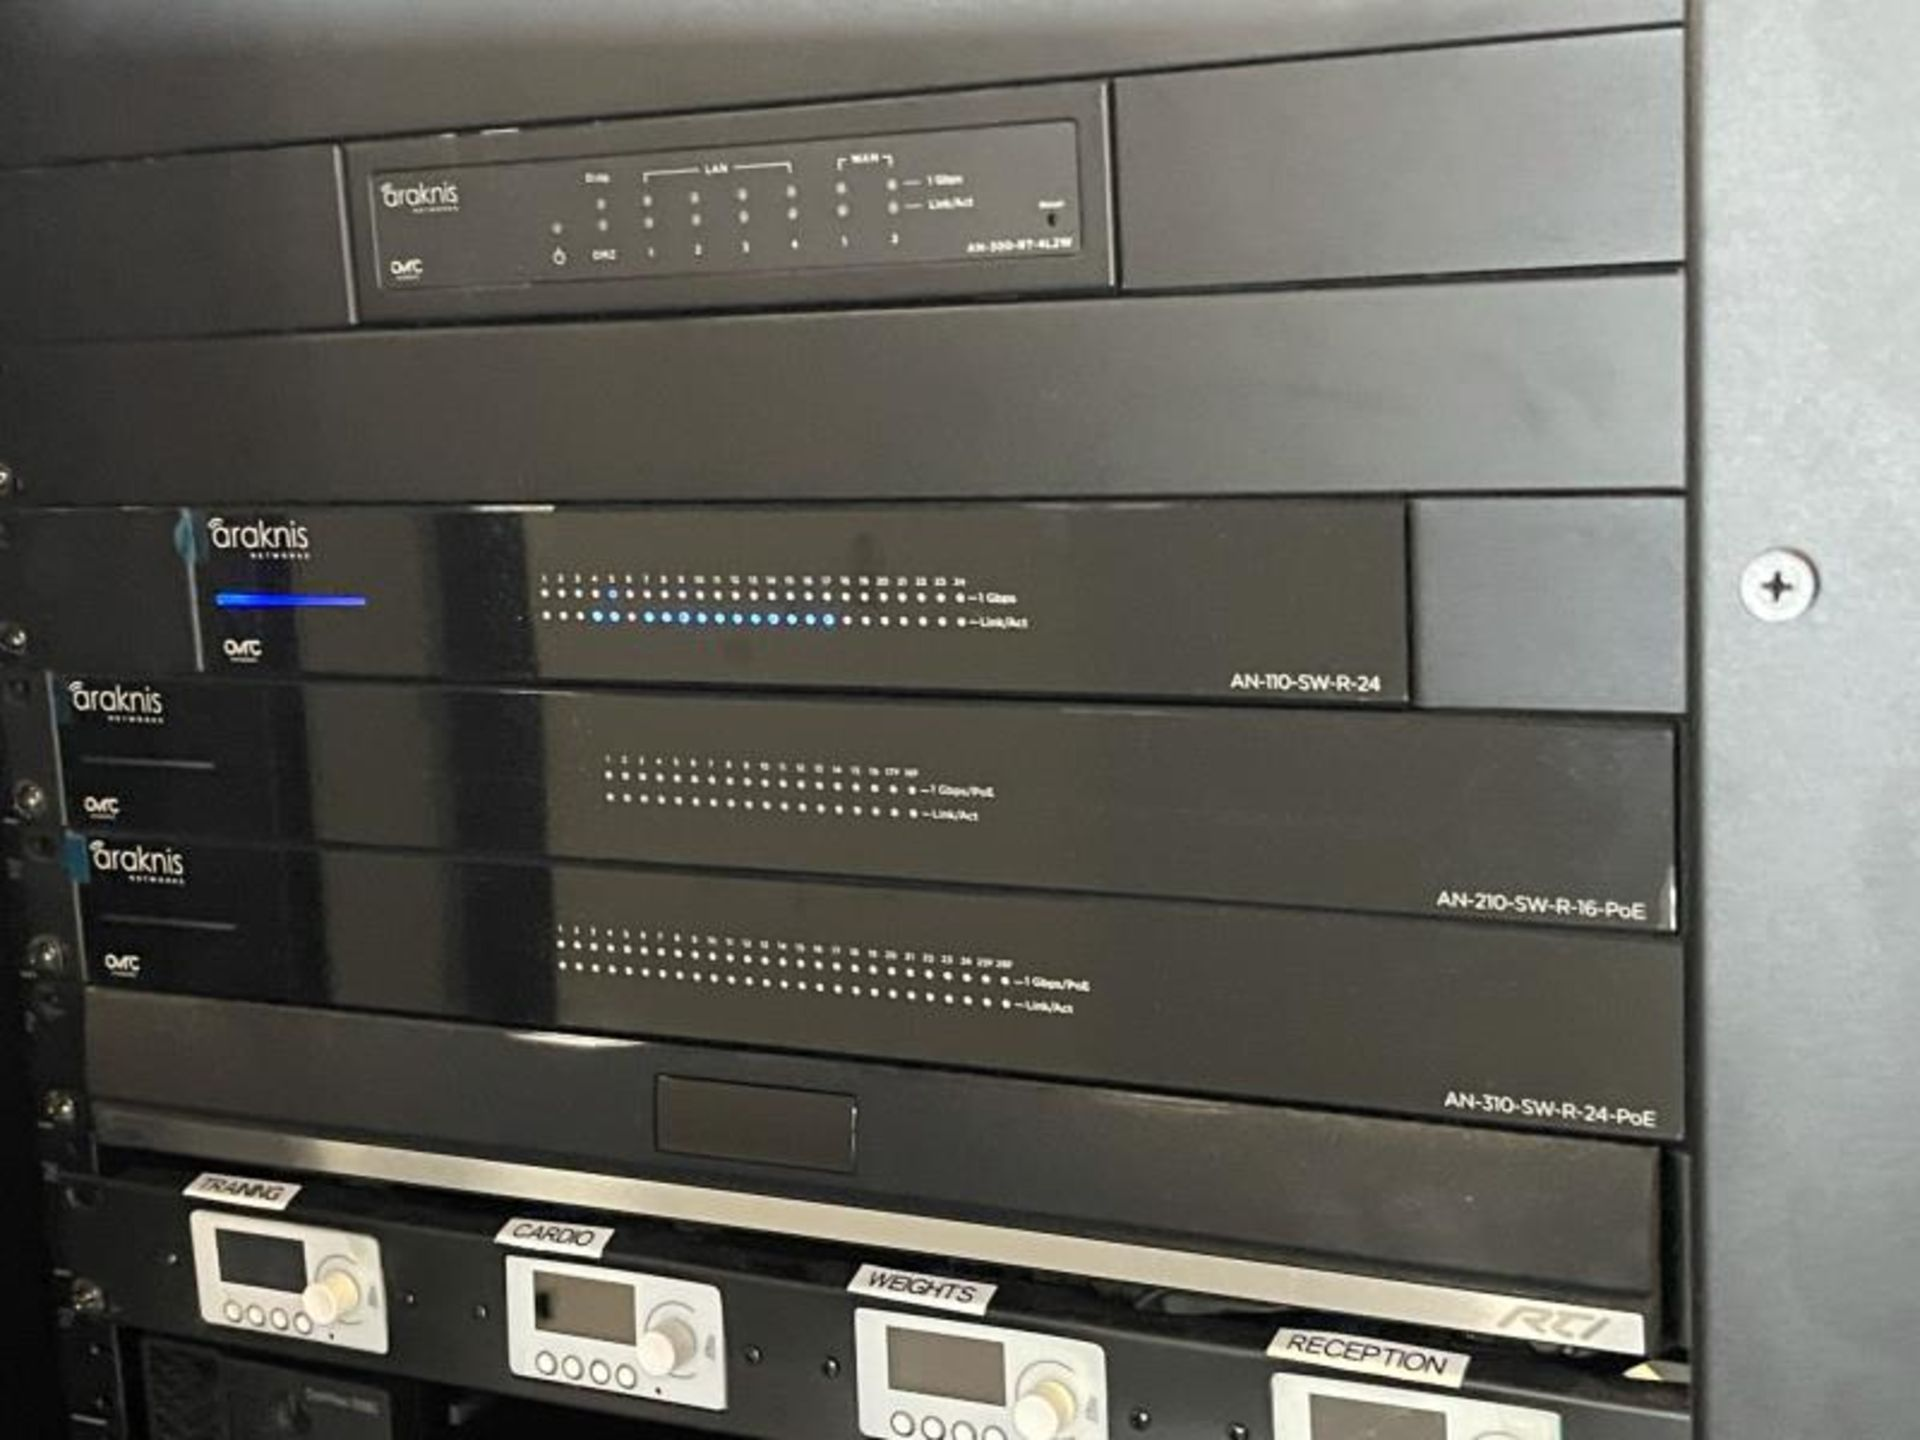 Electornics Cabinet by Strong , Made 2018 w/ Luma Network Box, OVRC Enabled LUM-500-DVR-16CH, (2) Wa - Image 6 of 18